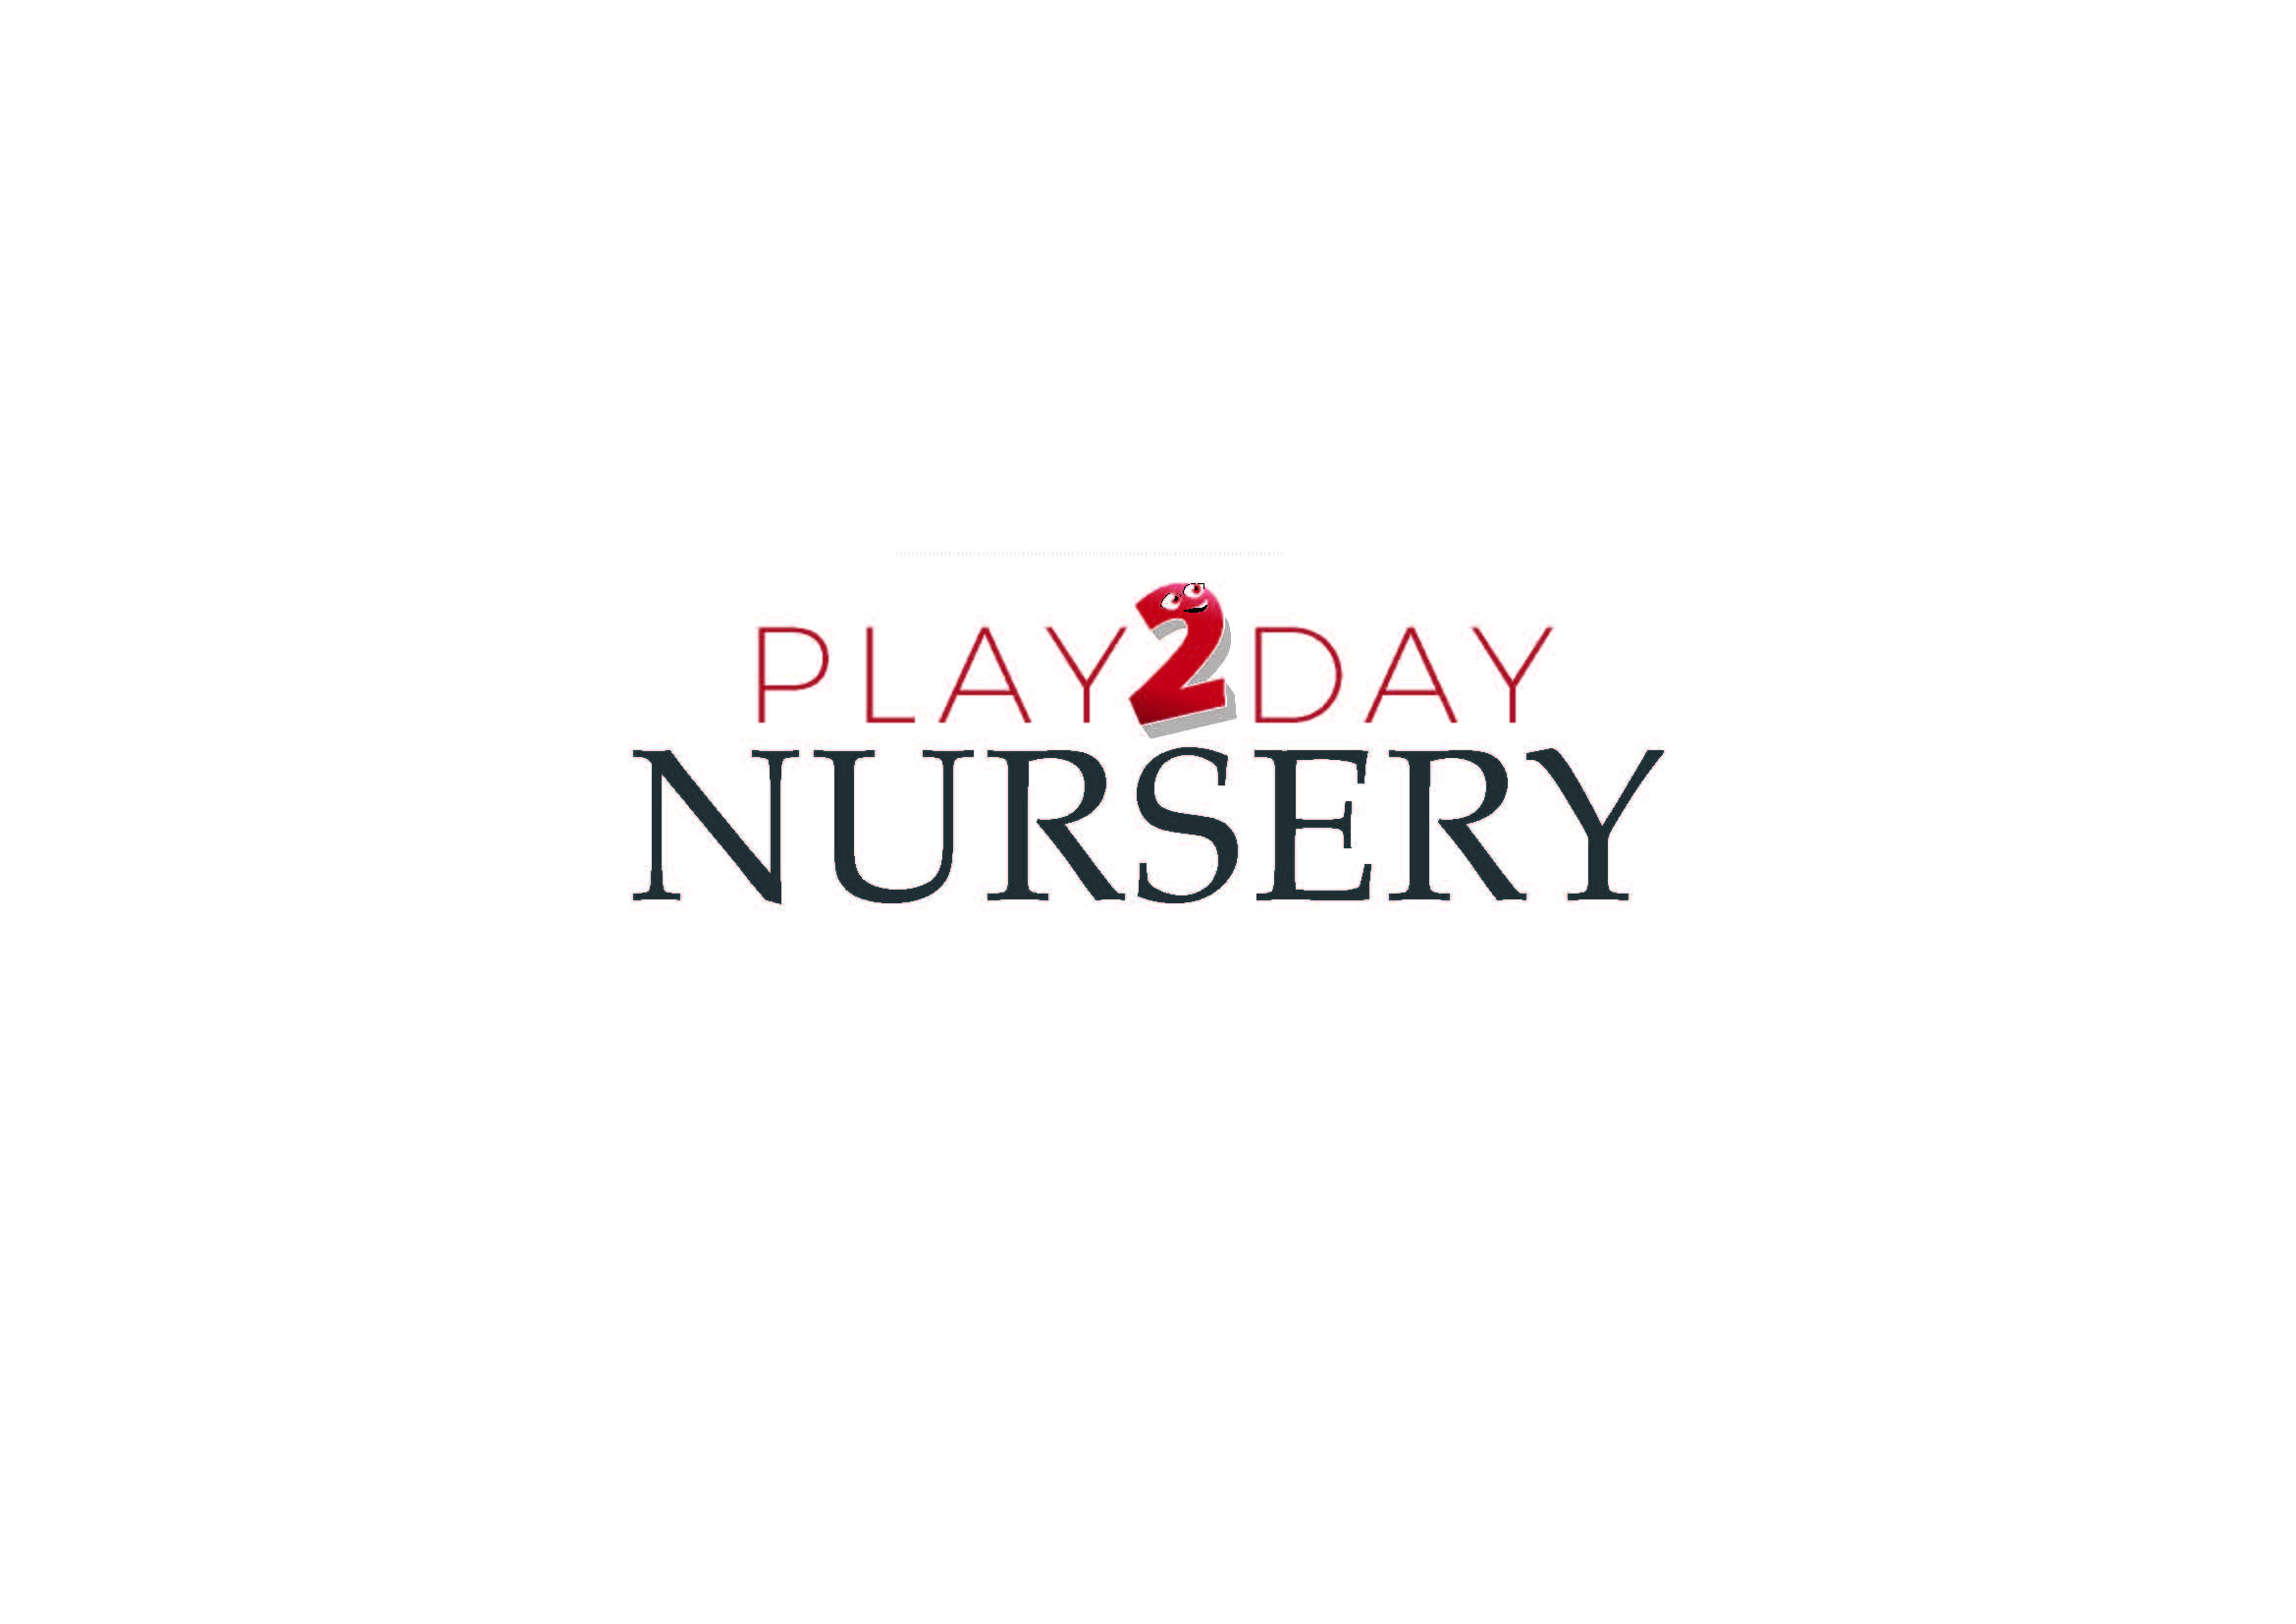 Play 2 Day Nursery's logo